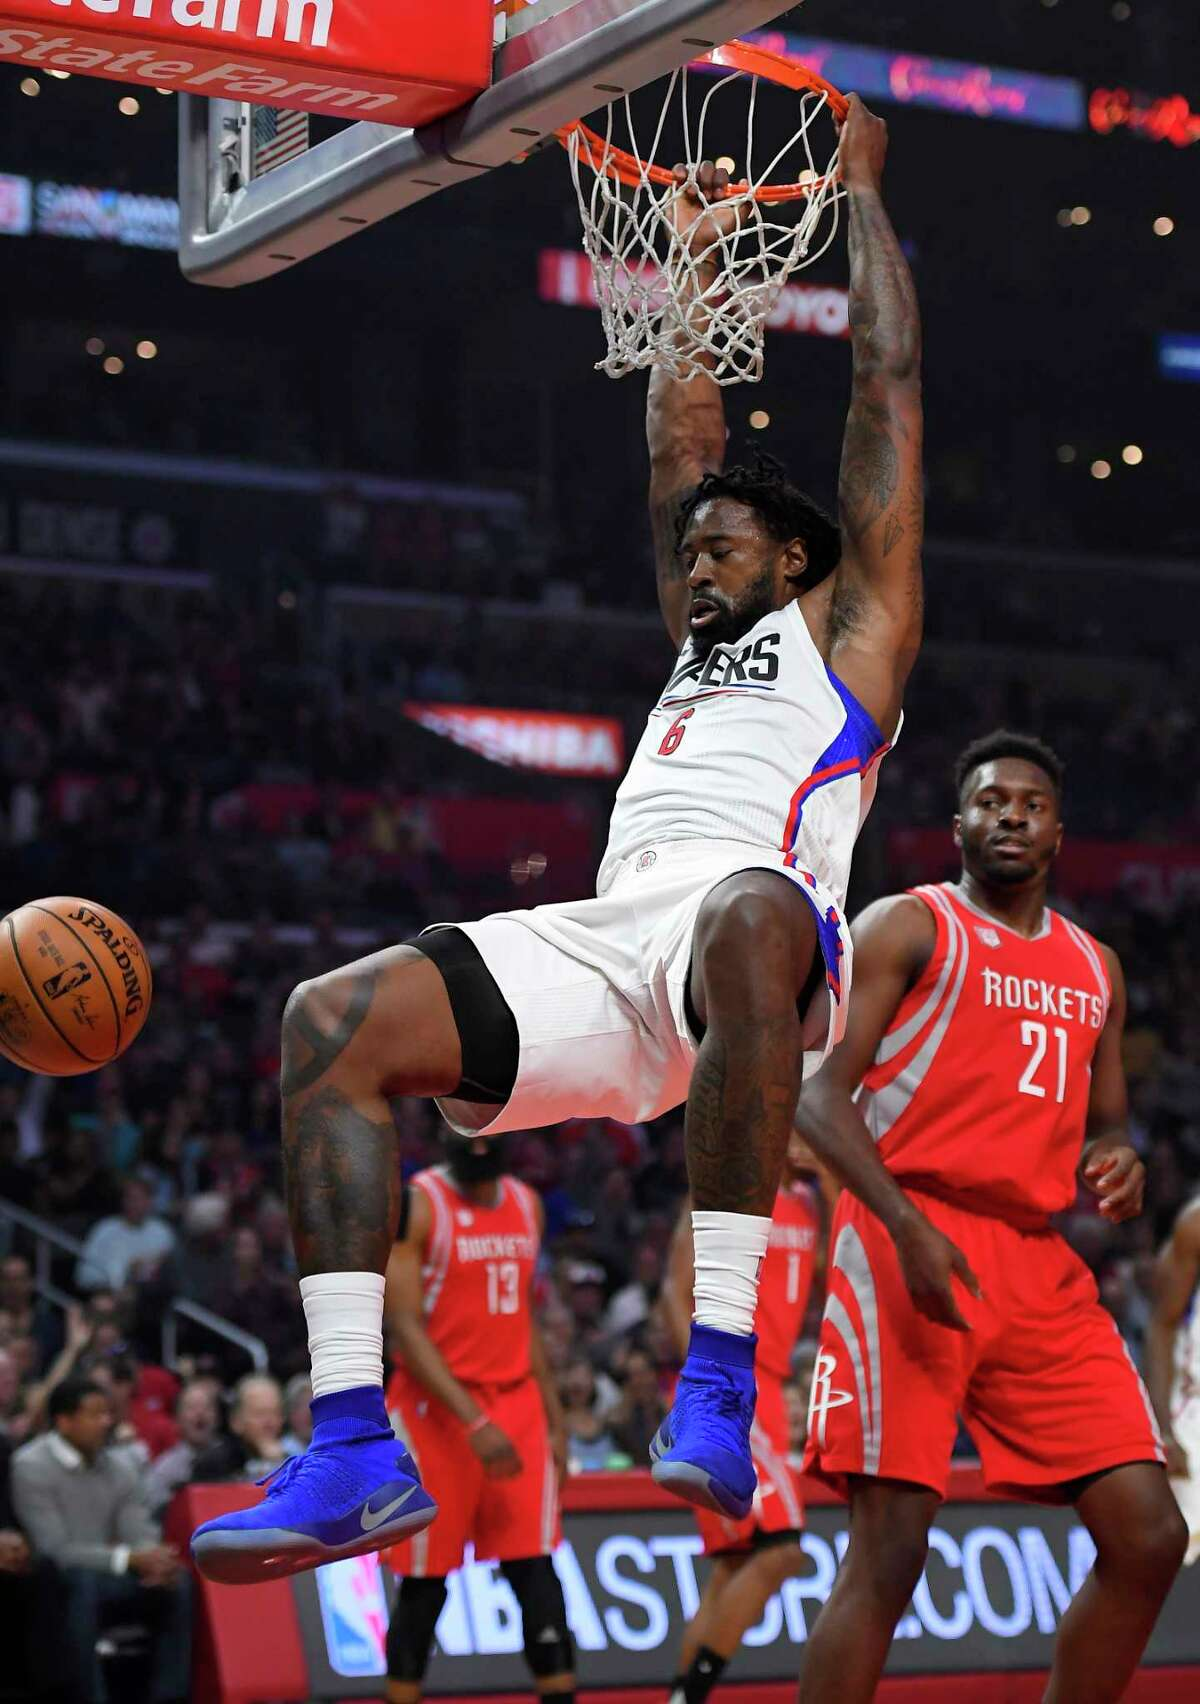 Los Angeles Clippers center DeAndre Jordan, left, dunks as Houston Rockets forward Chinanu Onuaku watches during the first half of an NBA basketball game, Monday, April 10, 2017, in Los Angeles. (AP Photo/Mark J. Terrill)